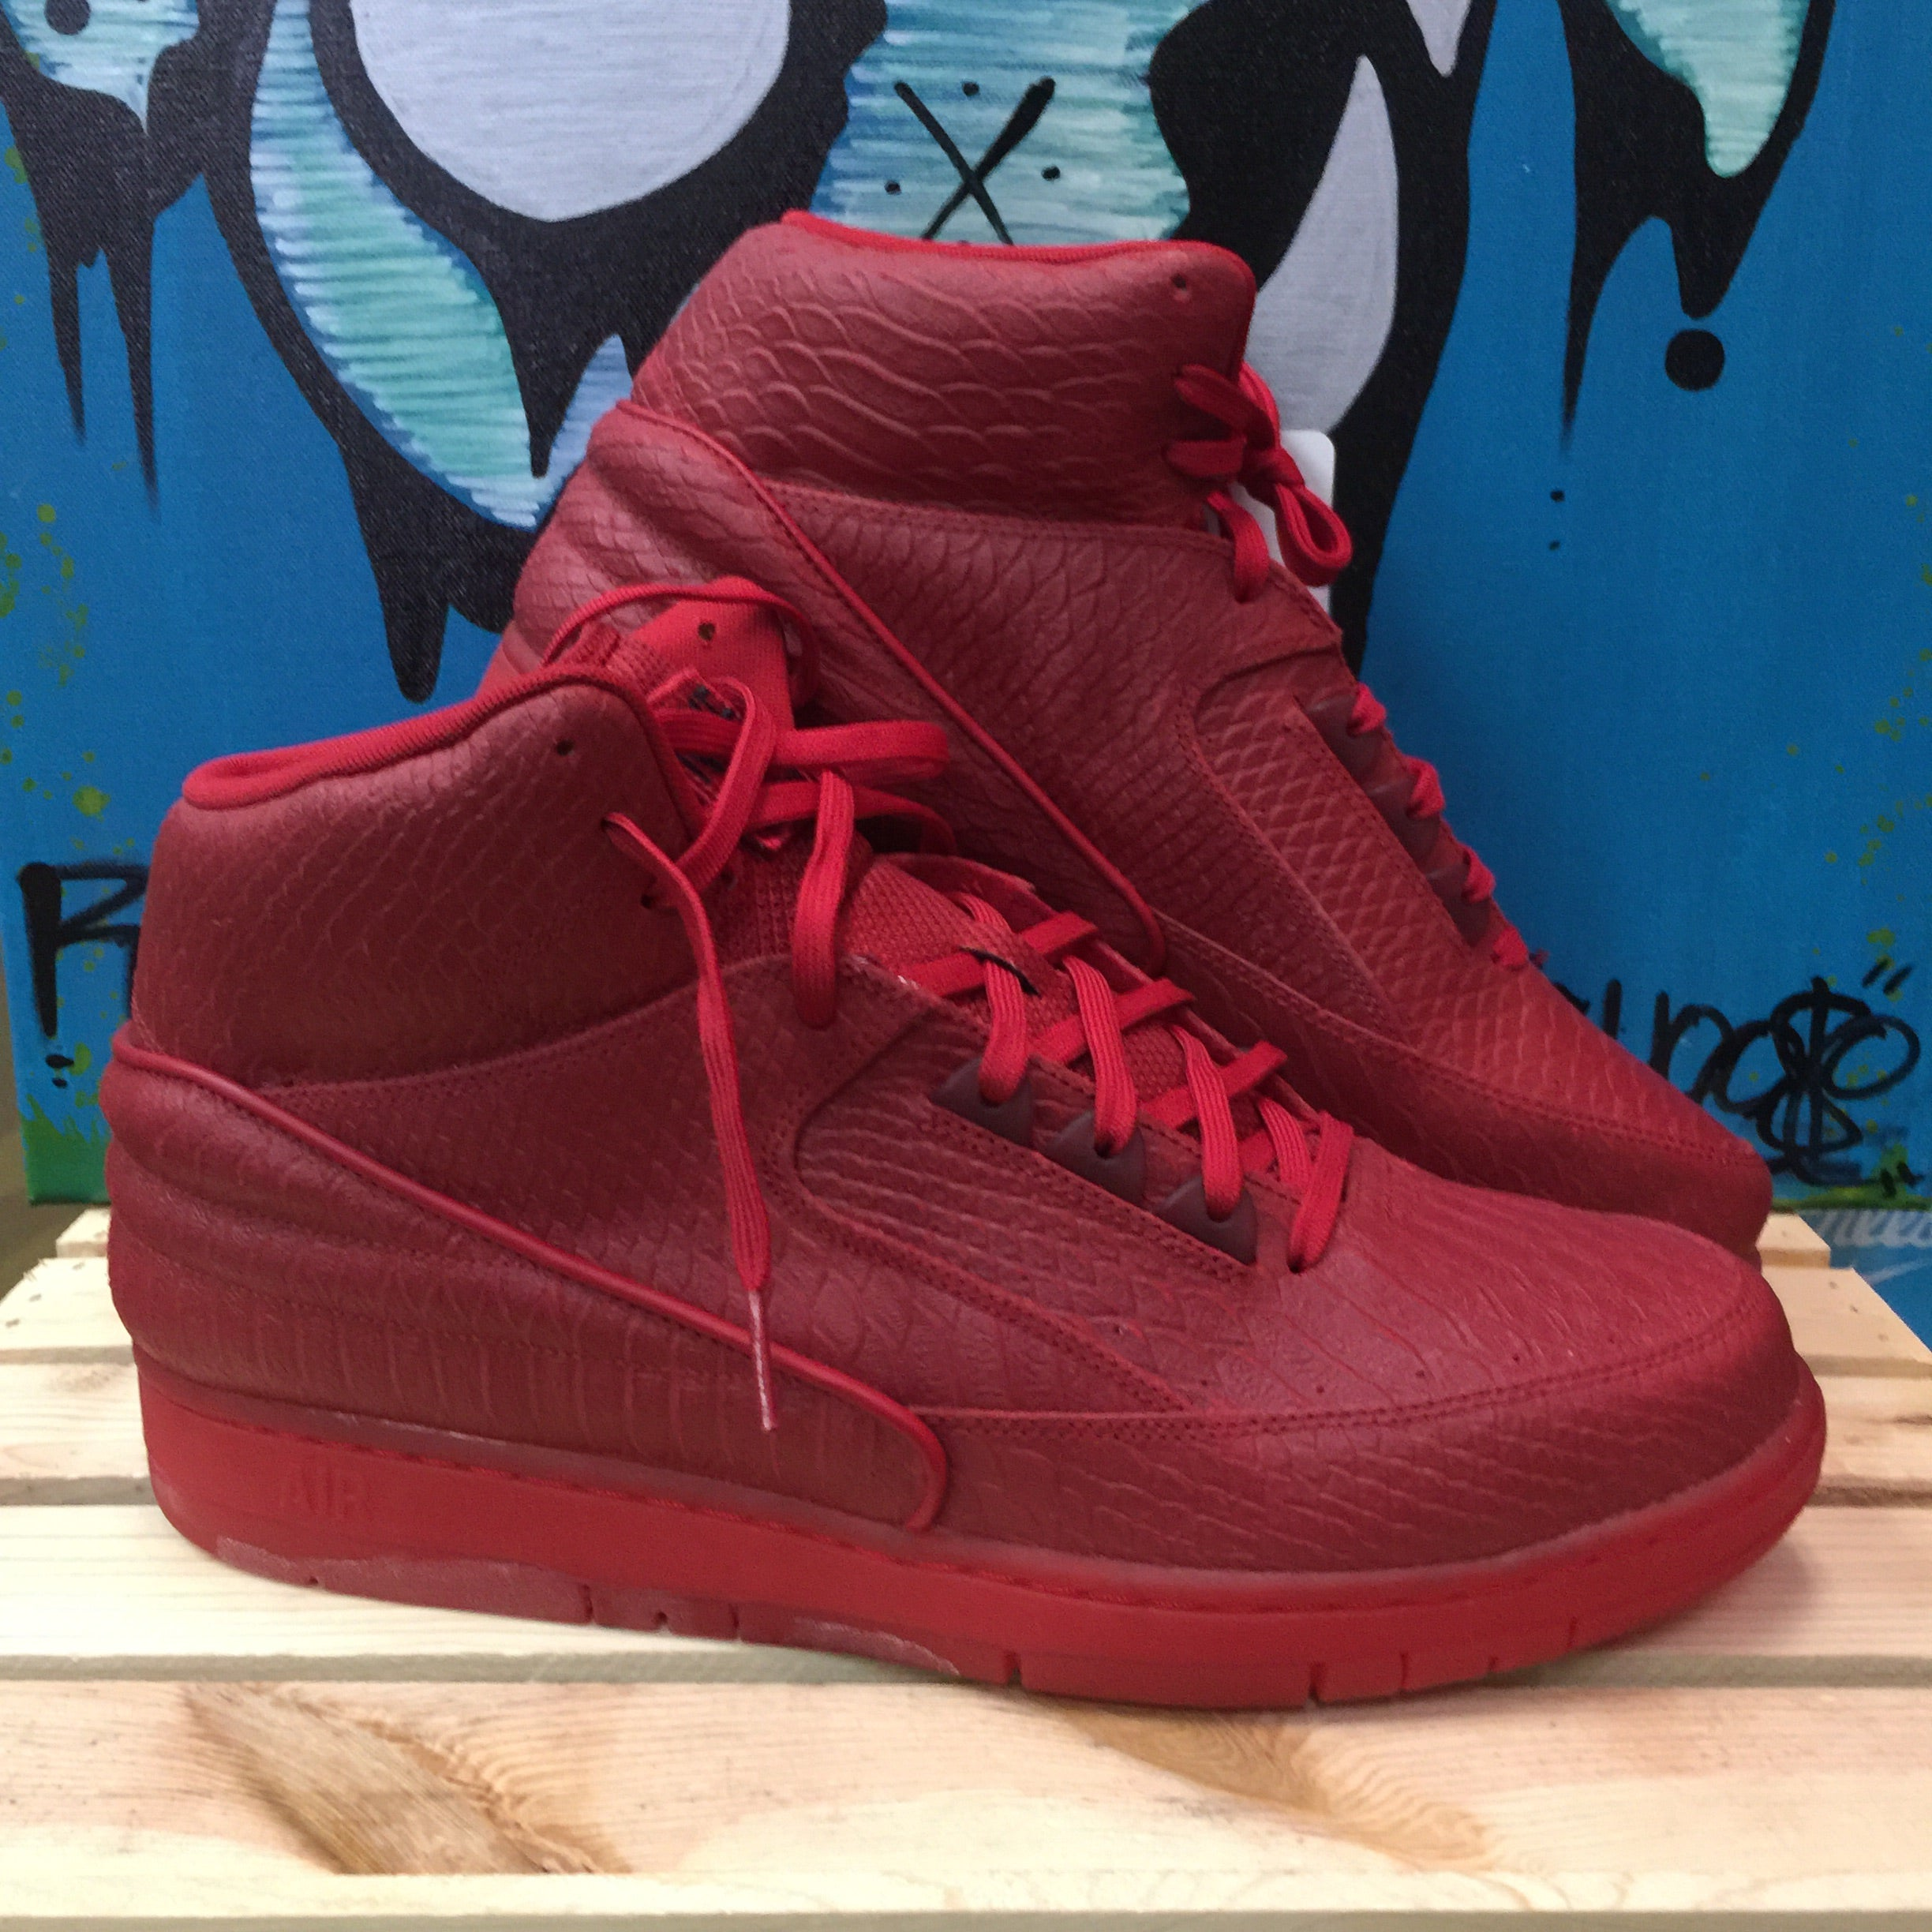 brand new a523f 3a209 ... release date nike red pythons size 13 5d6f7 06479